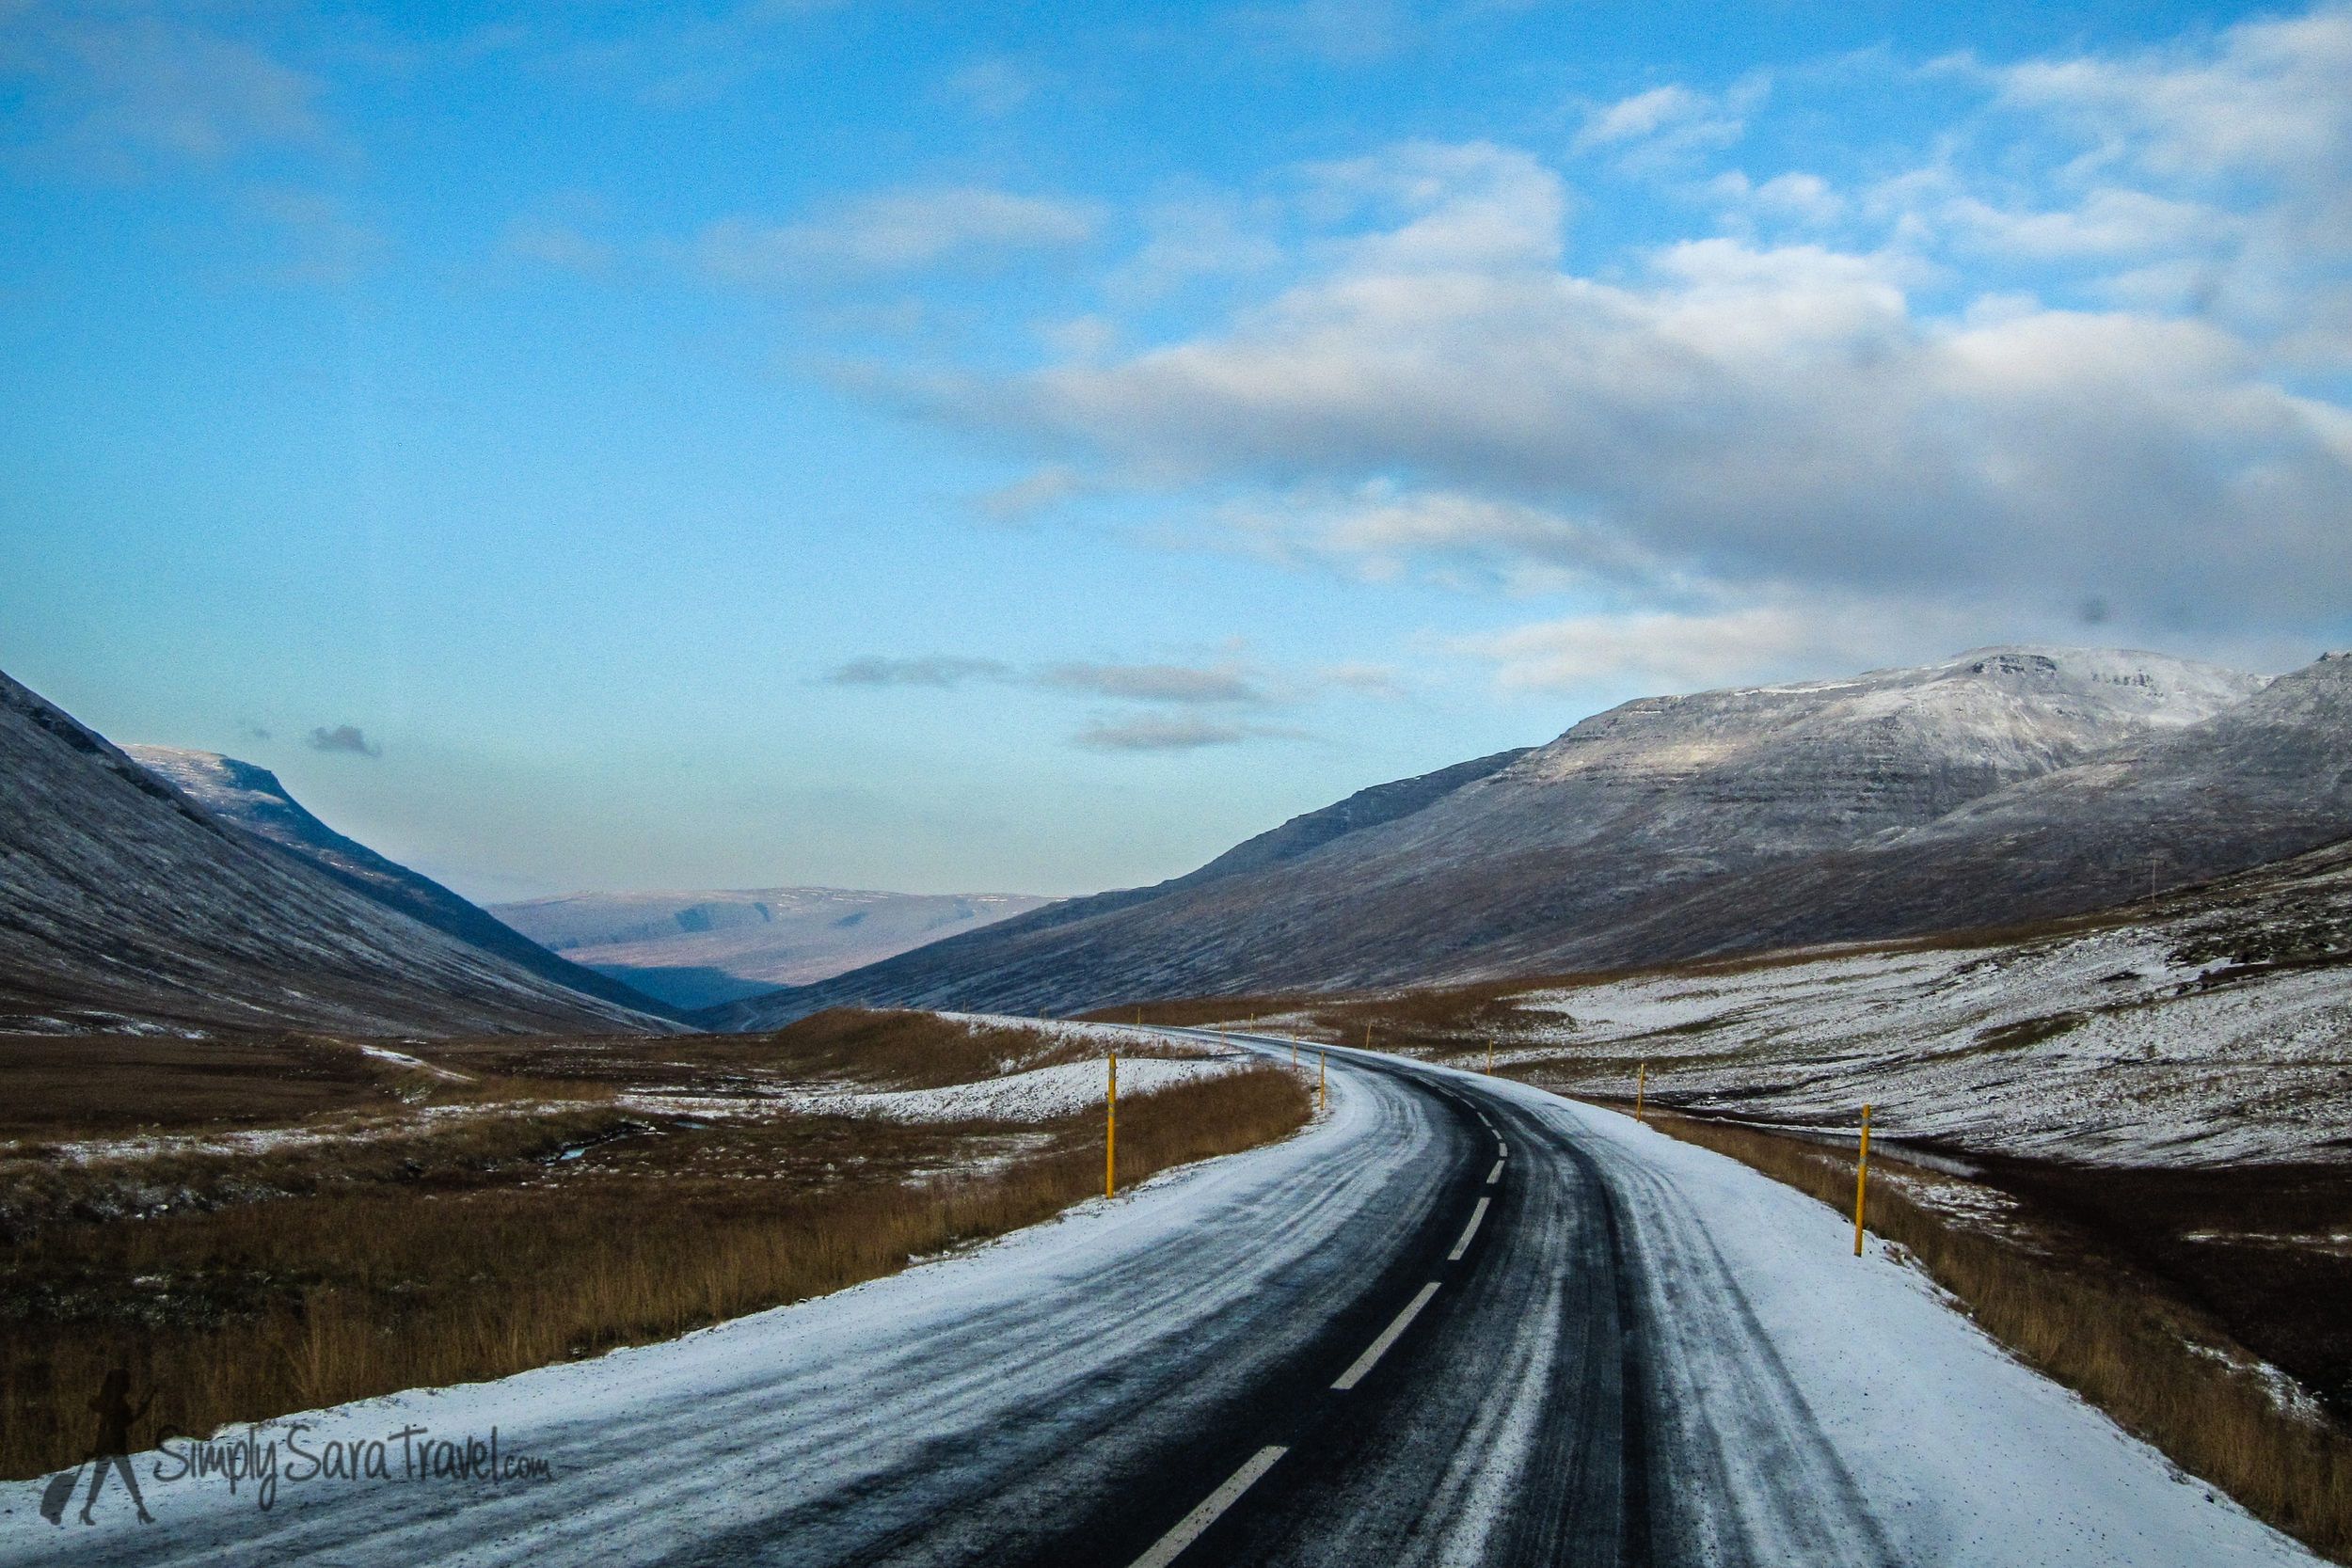 Snowy road and mountains in Iceland, October 2014